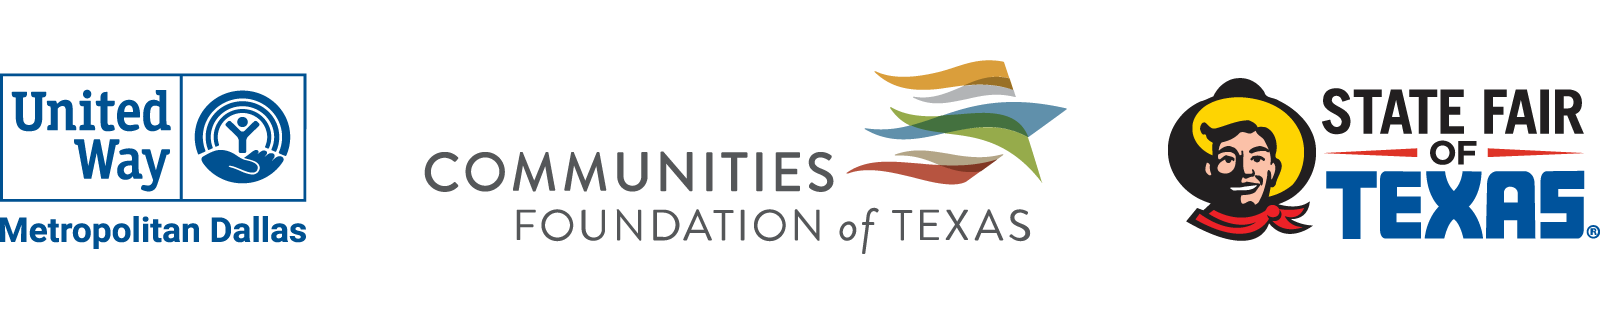 Sponsored by United Way of Metropolitan Dallas, Communities Foundation of Texas and the State Fair of Texas.